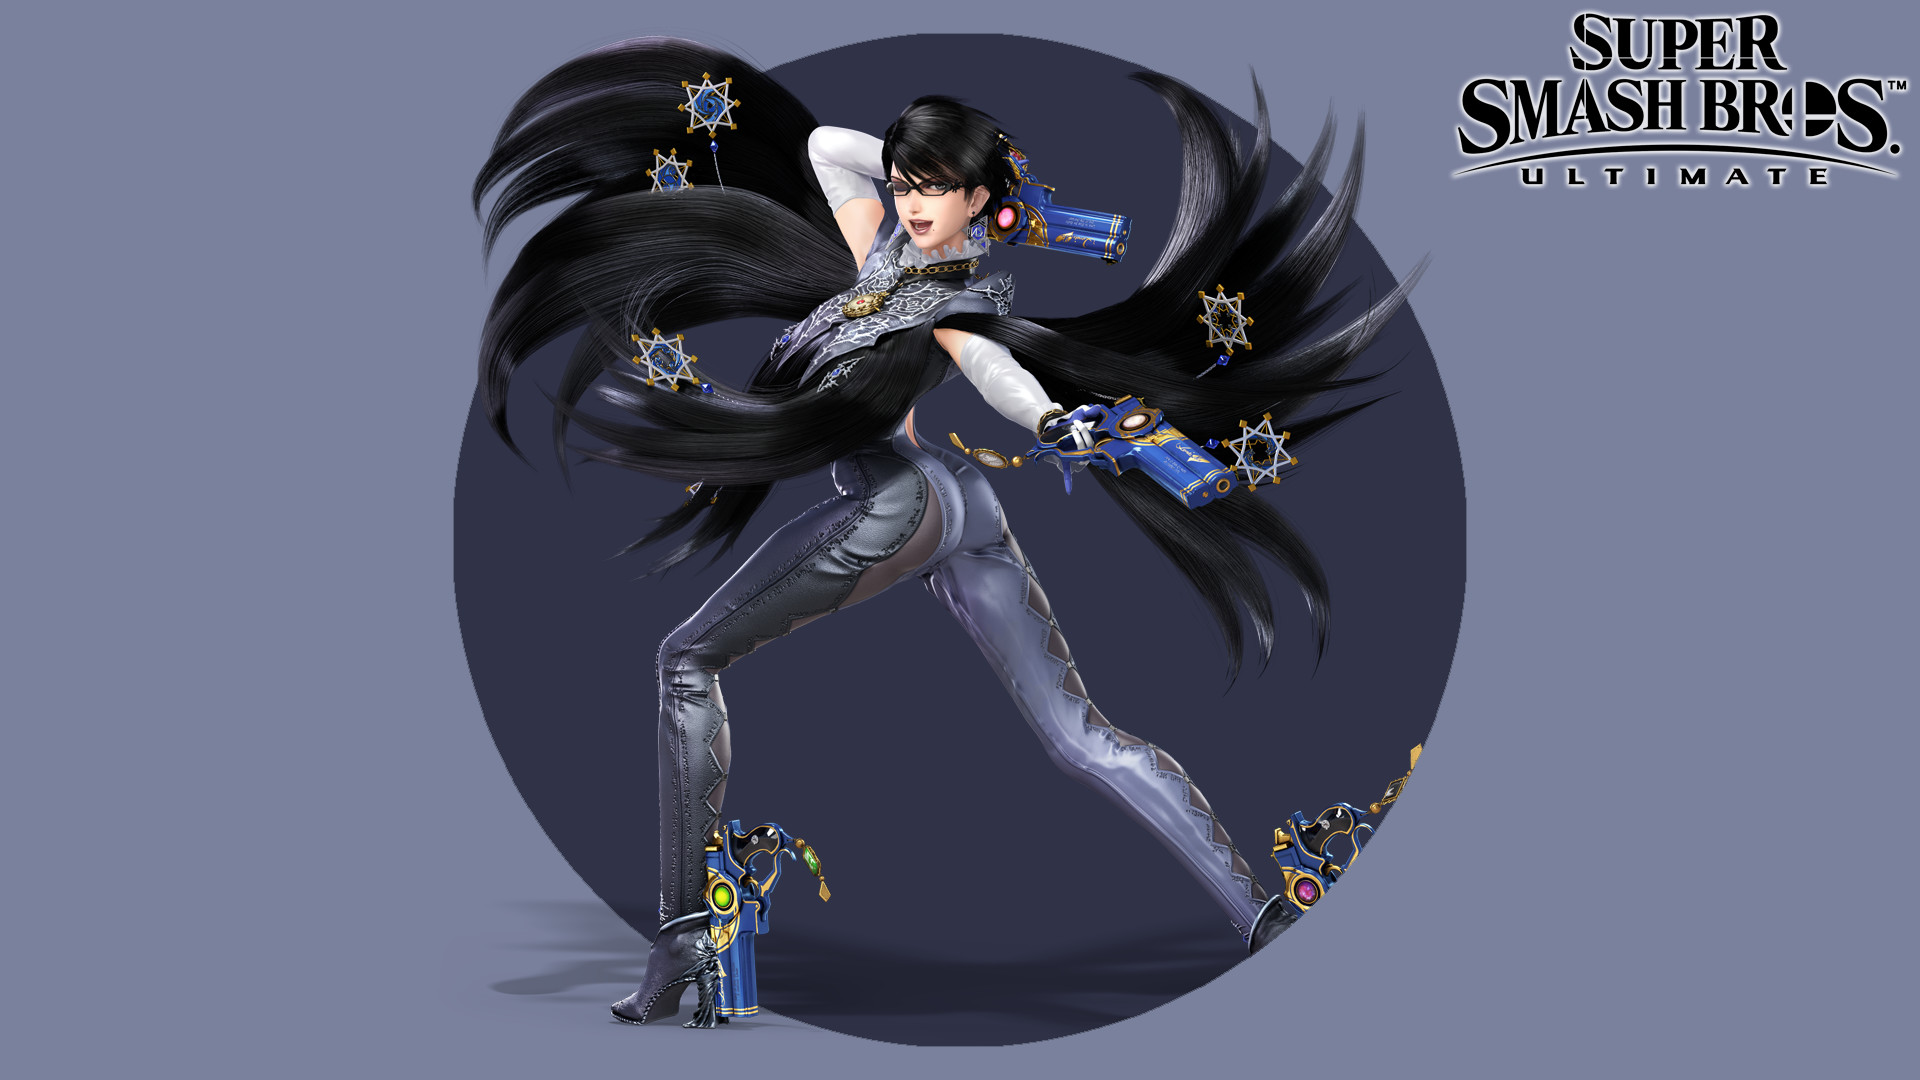 Bayonetta Smash Bros Wallpaper 87 Images